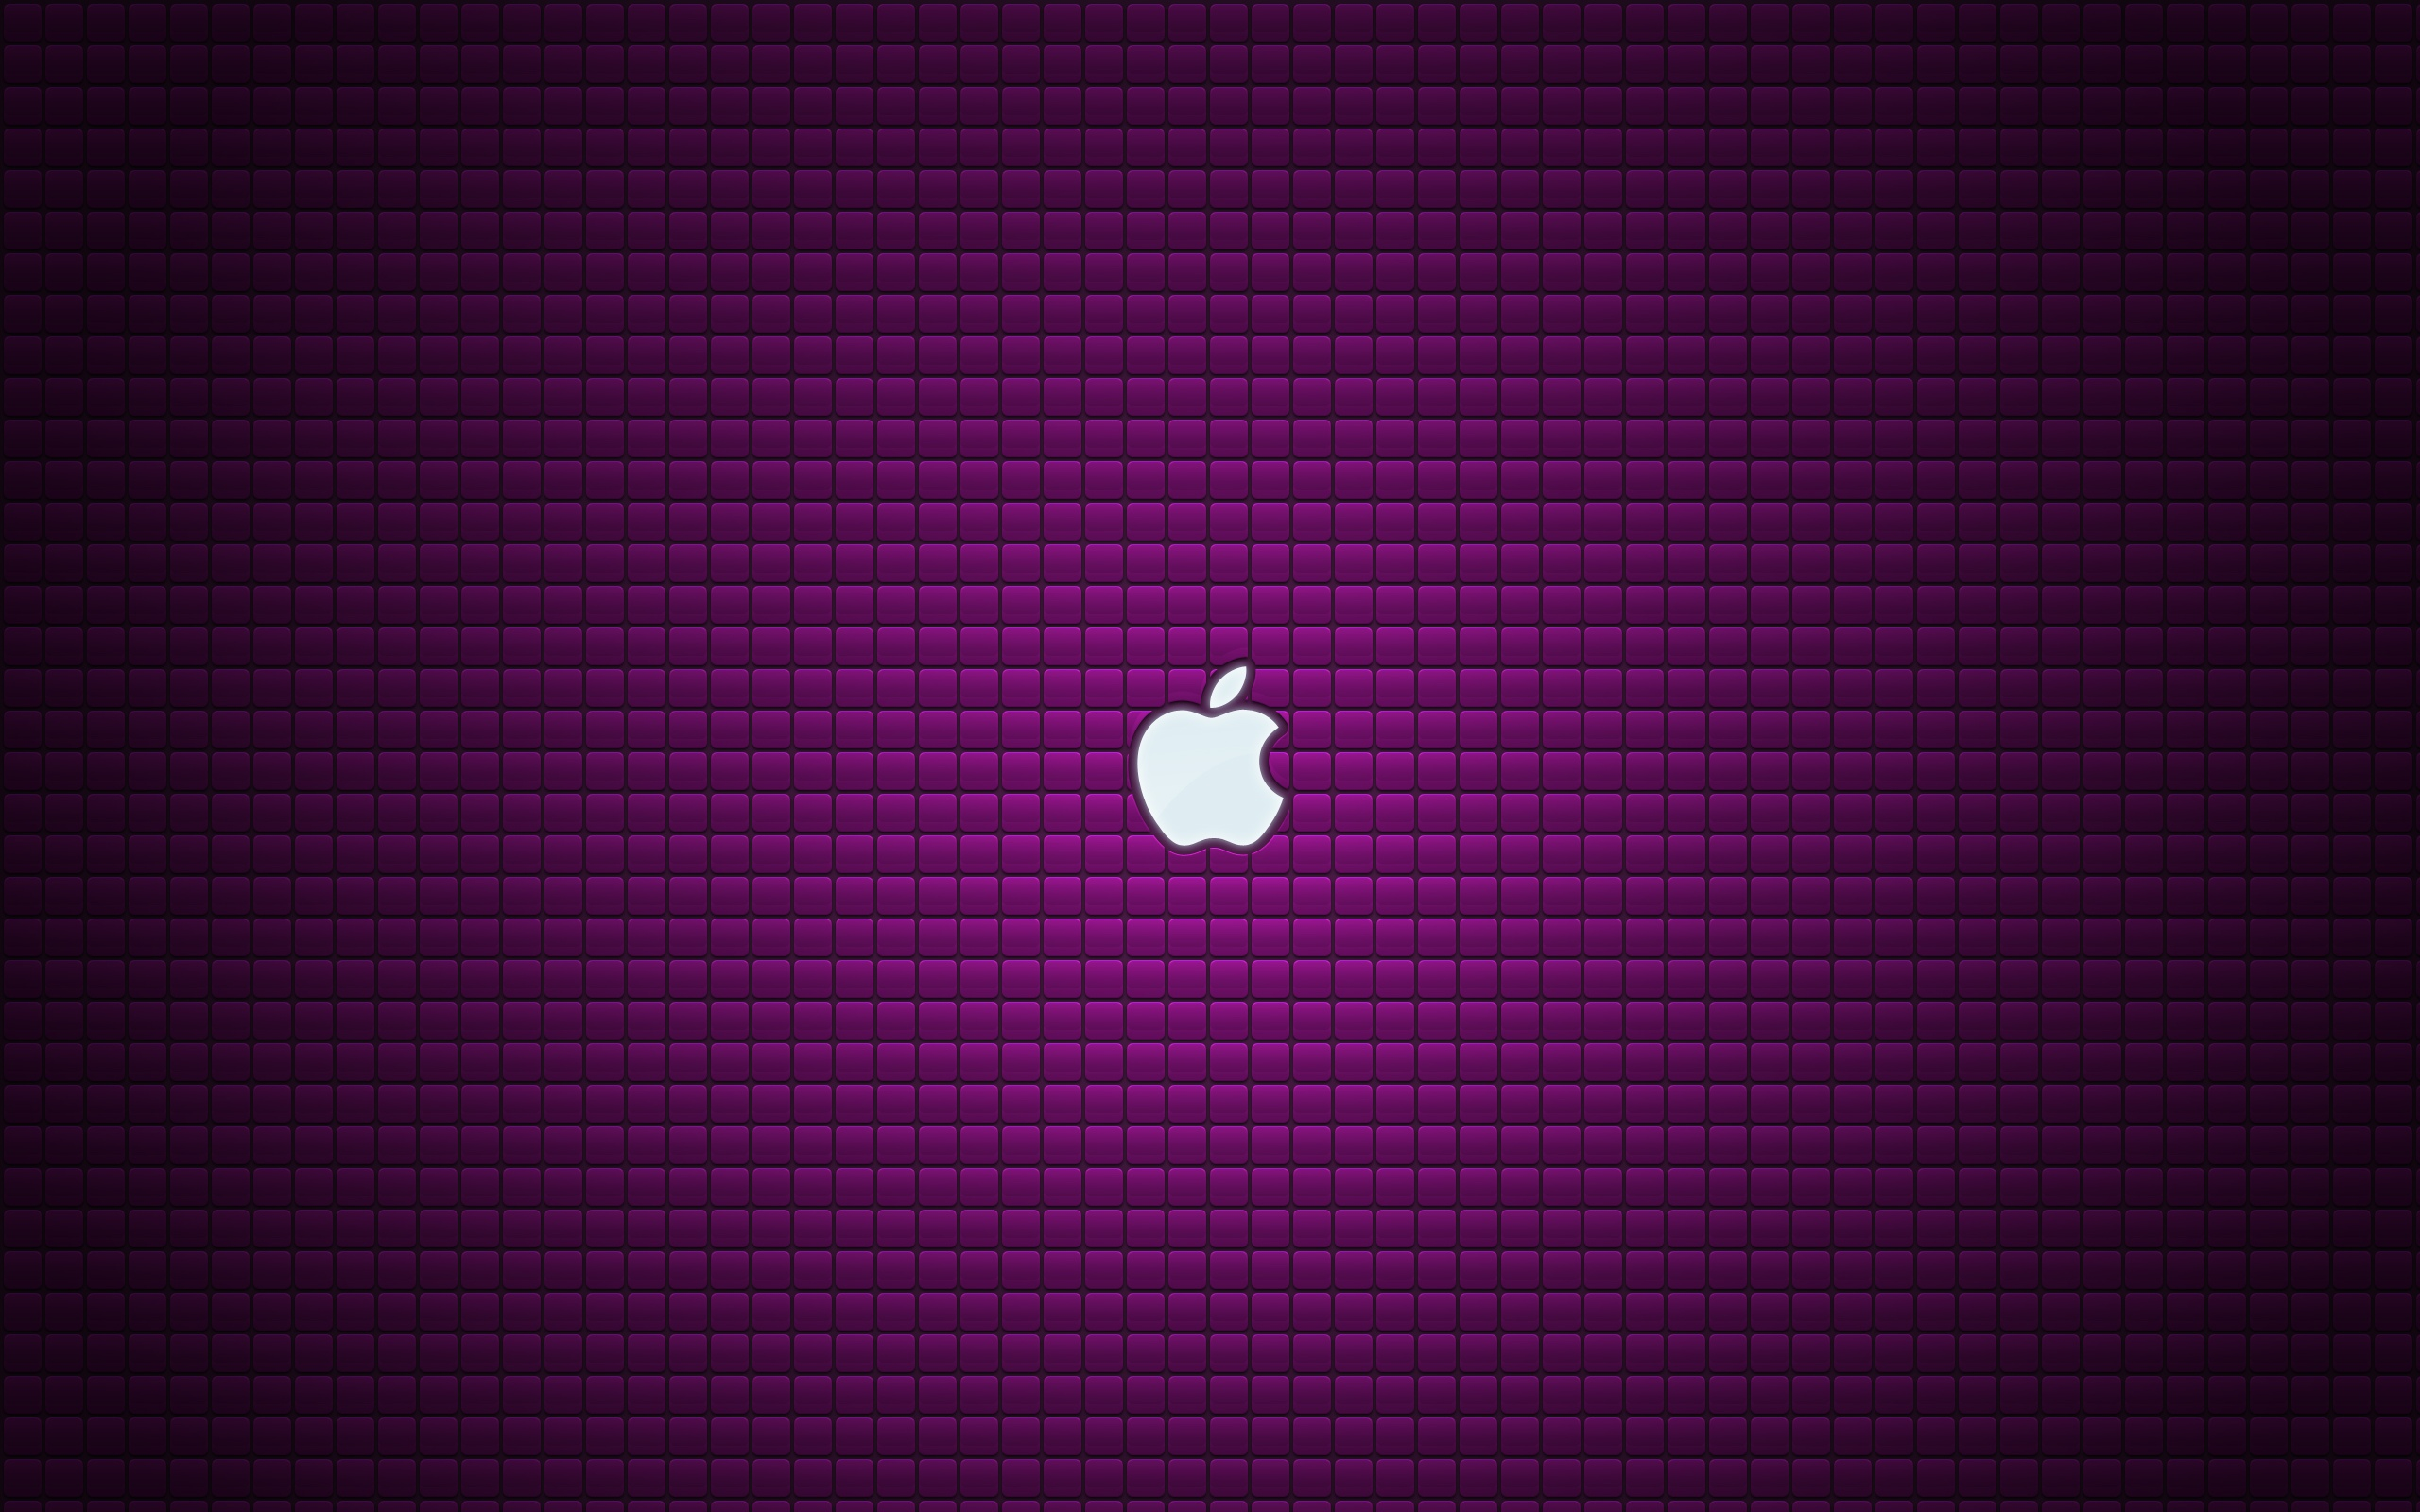 Purple mac logo